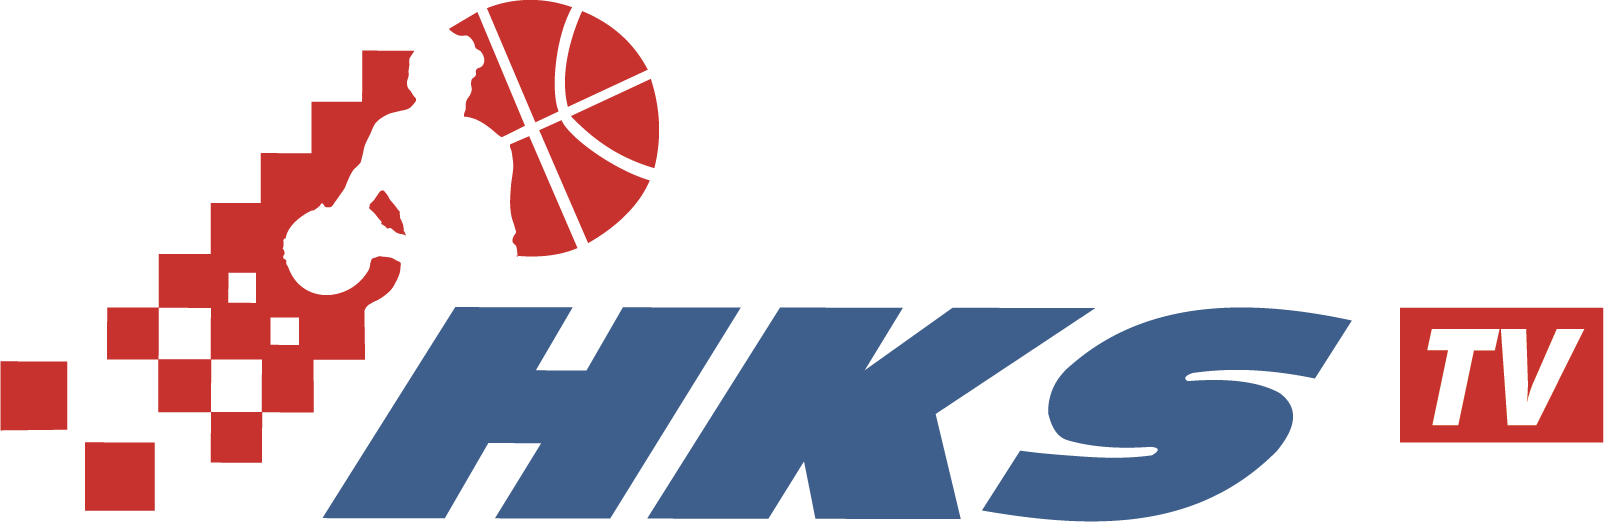 HKS-TV-logo-web